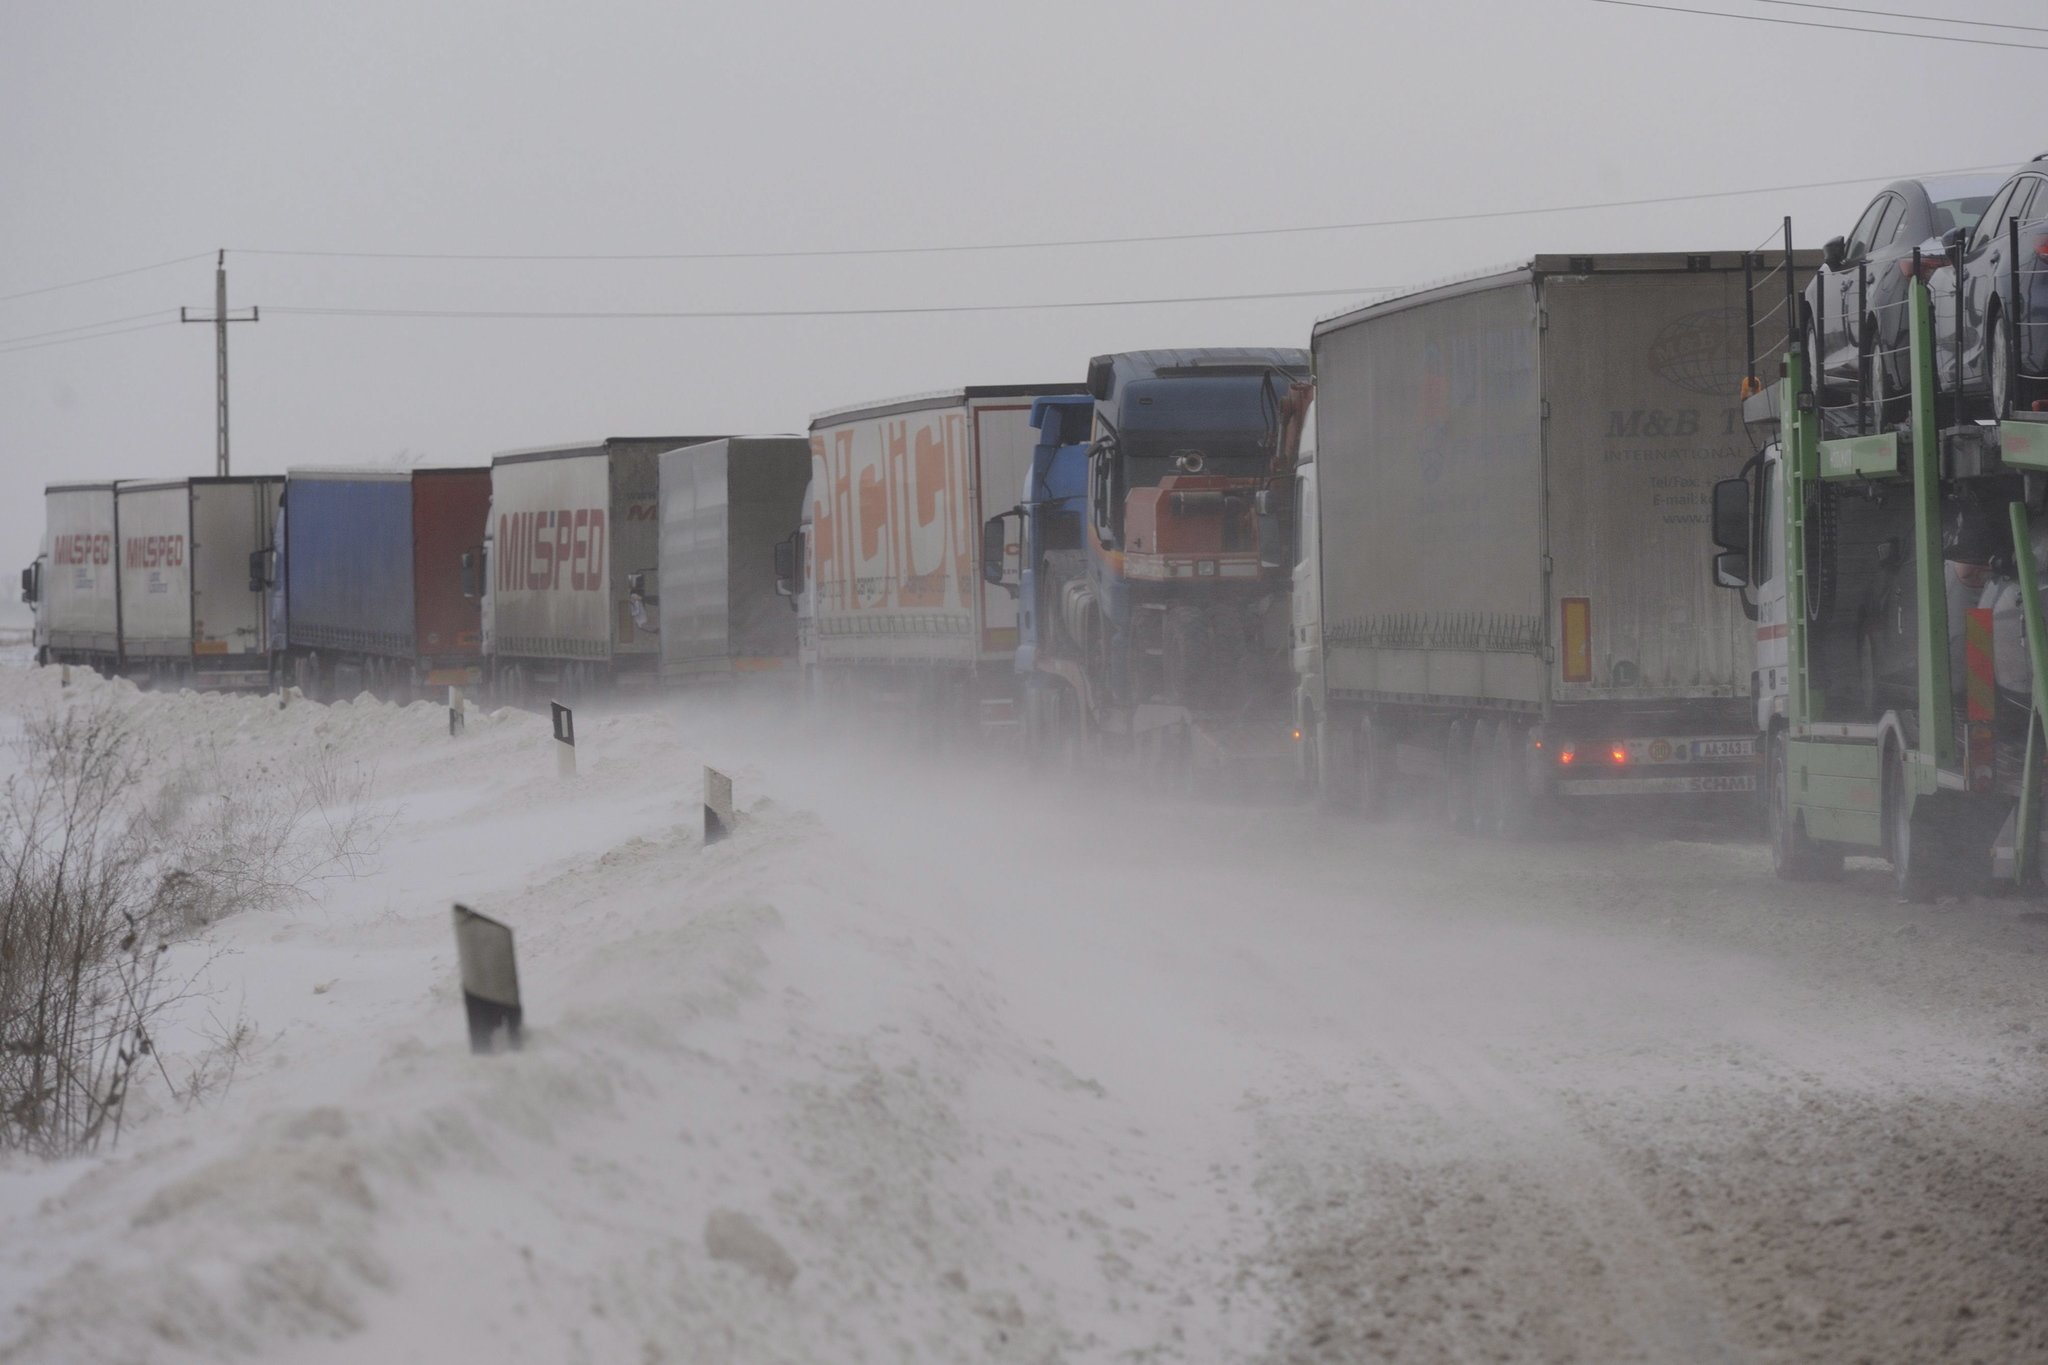 Hungarian drivers warned of icy roads